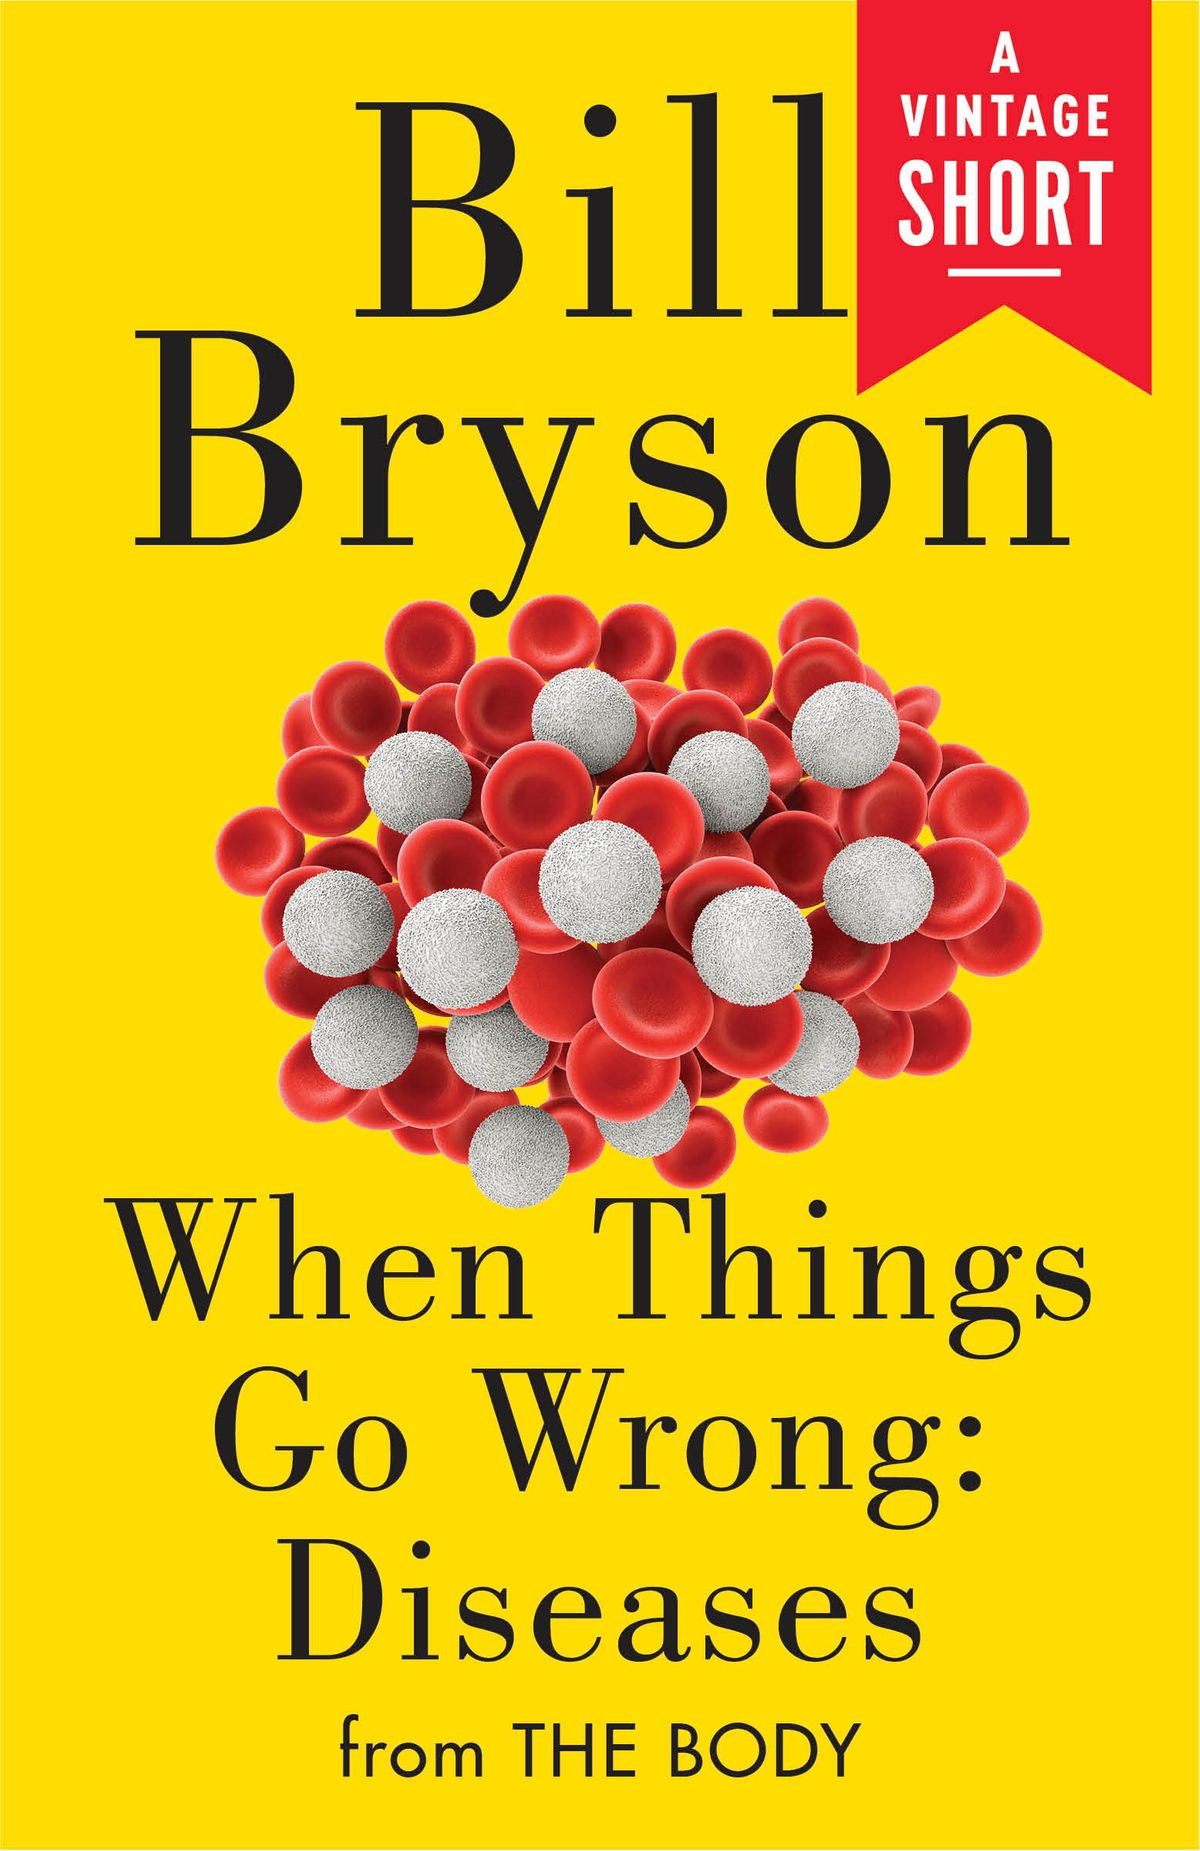 When Things Go Wrong: Diseases from The Body